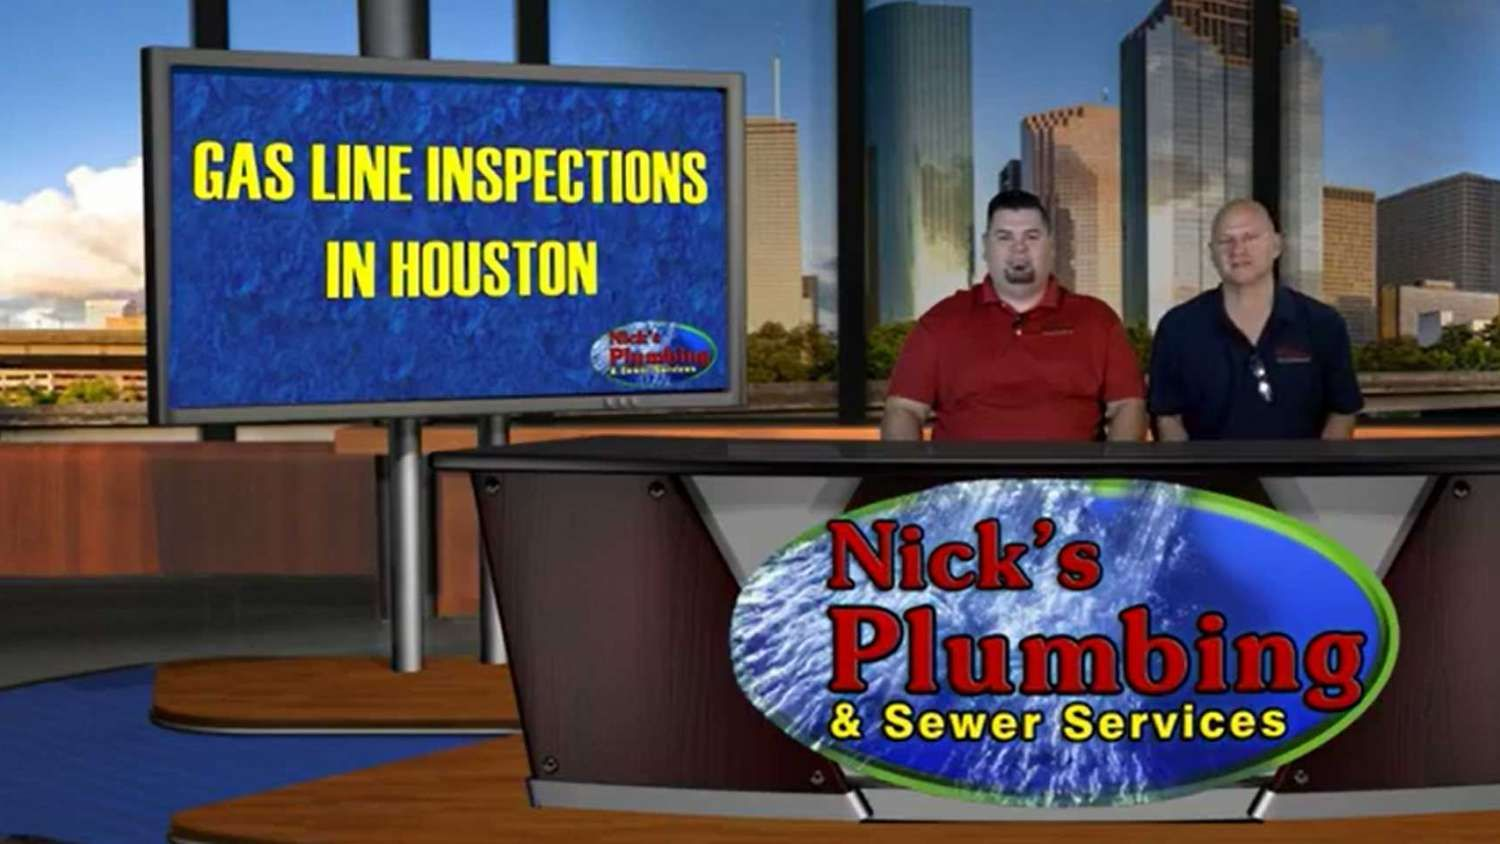 Experts Sitting at a News Desk in Downtown Houston Discuss Gas Line Inspections